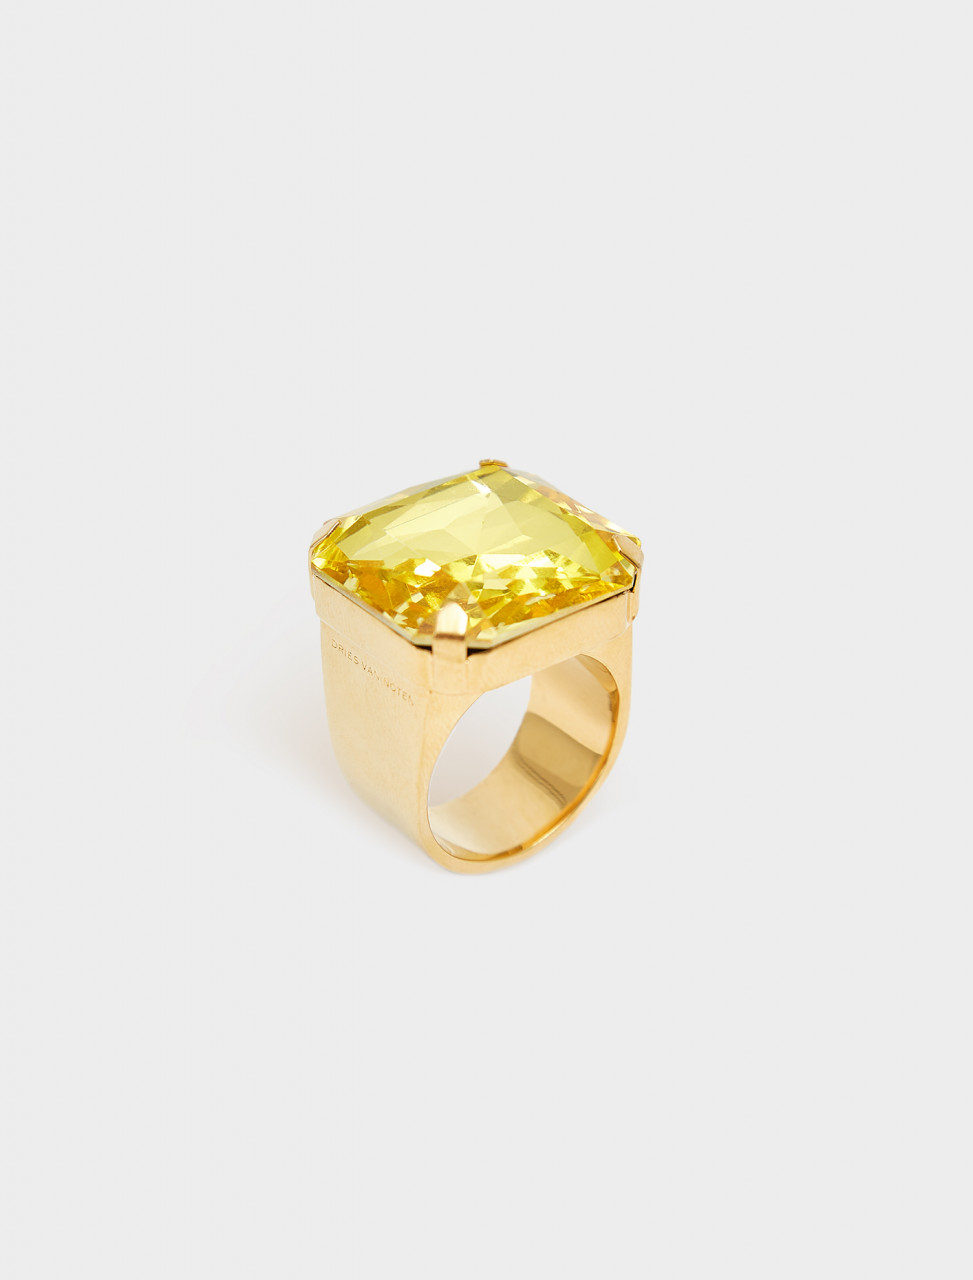 260-202-28801-202 DRIES VAN NOTEN GOLD COLOUR RING WITH YELLOW STONE